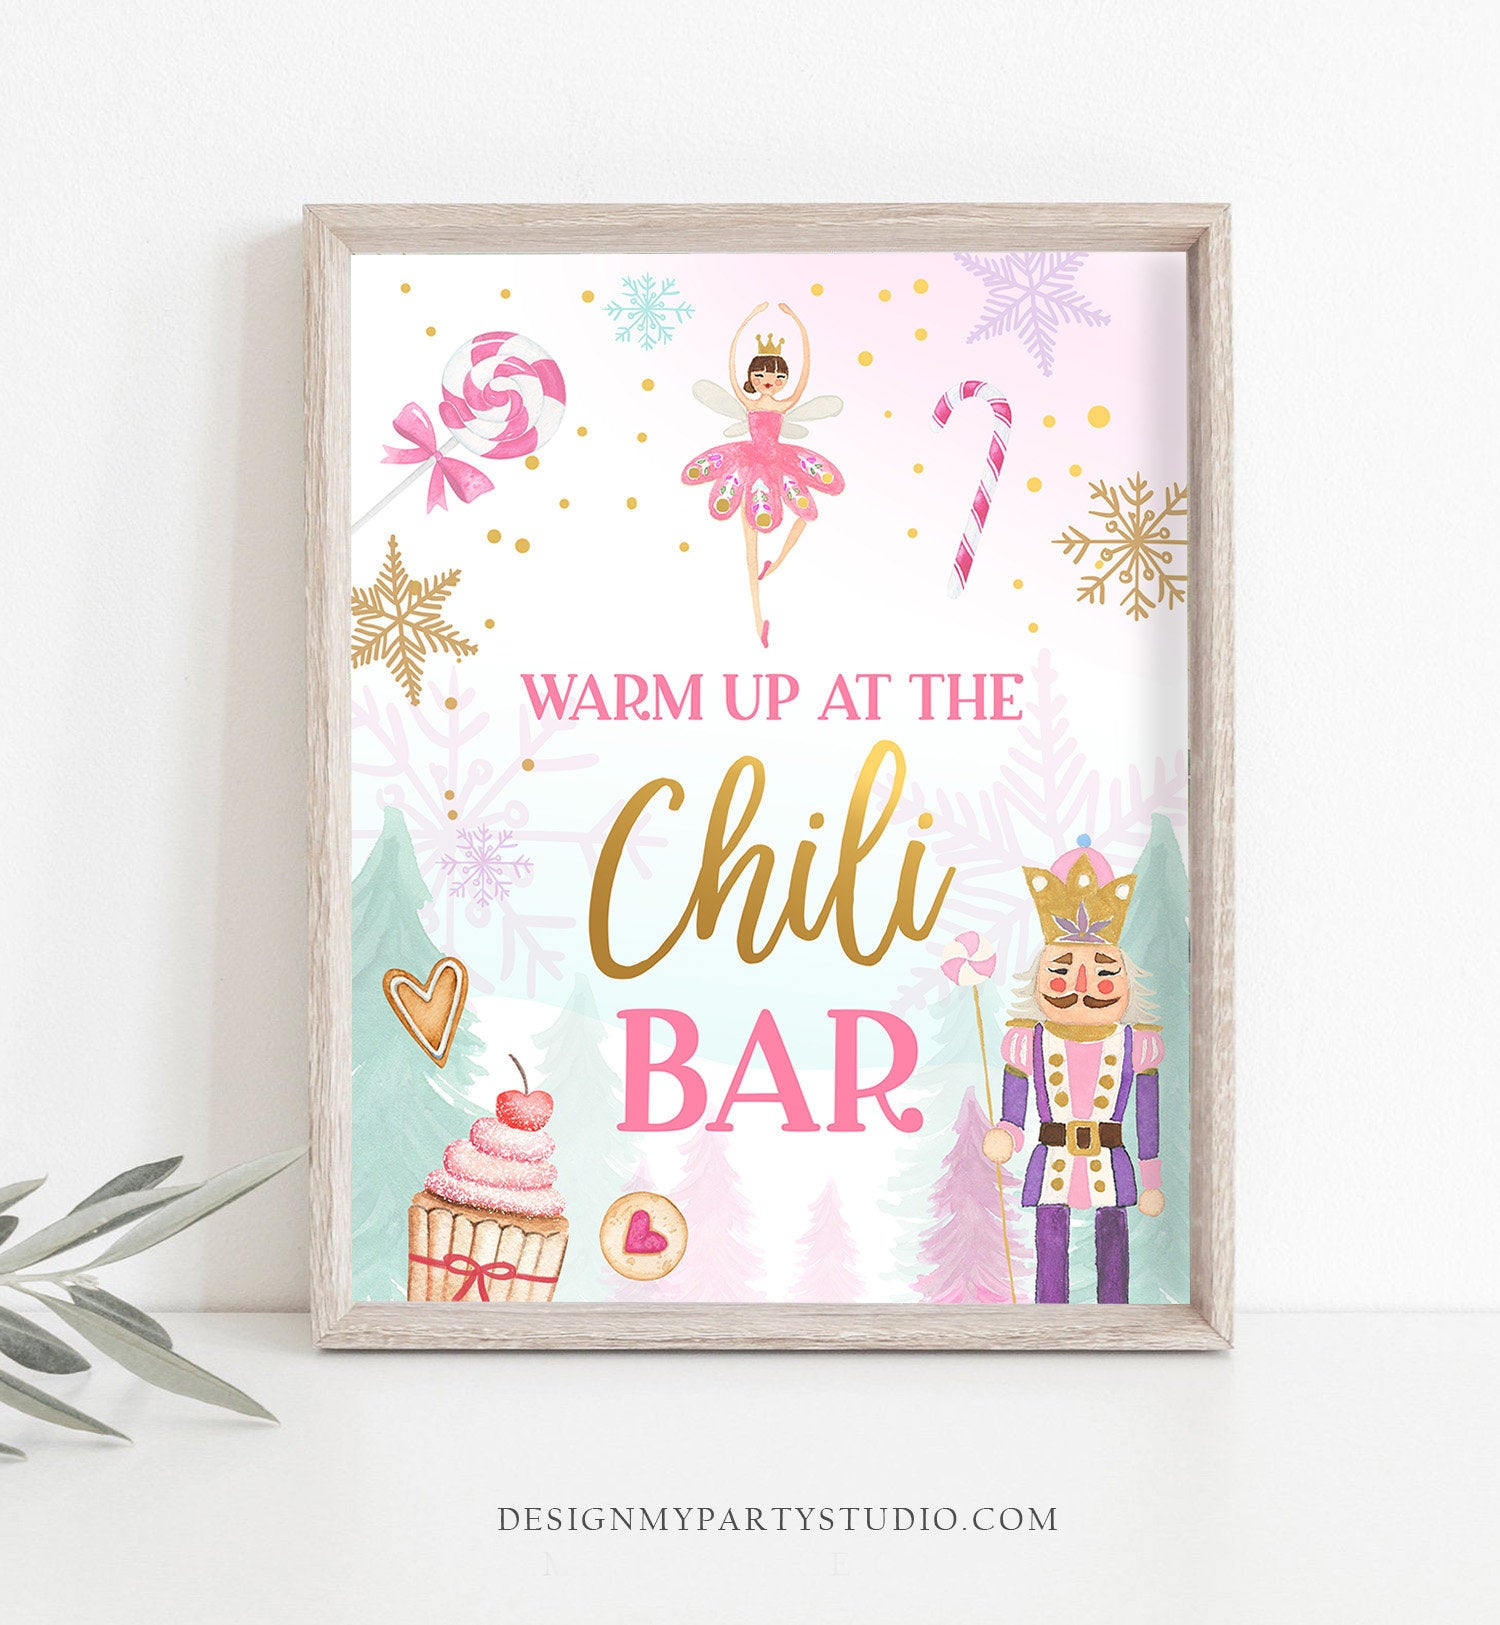 Chili Bar Sign Nutcracker Birthday Decor Hot Food Table Sign Girl Sugar Plum Fairy Pink Nutcracker Ballet Decor Download Printable 0352